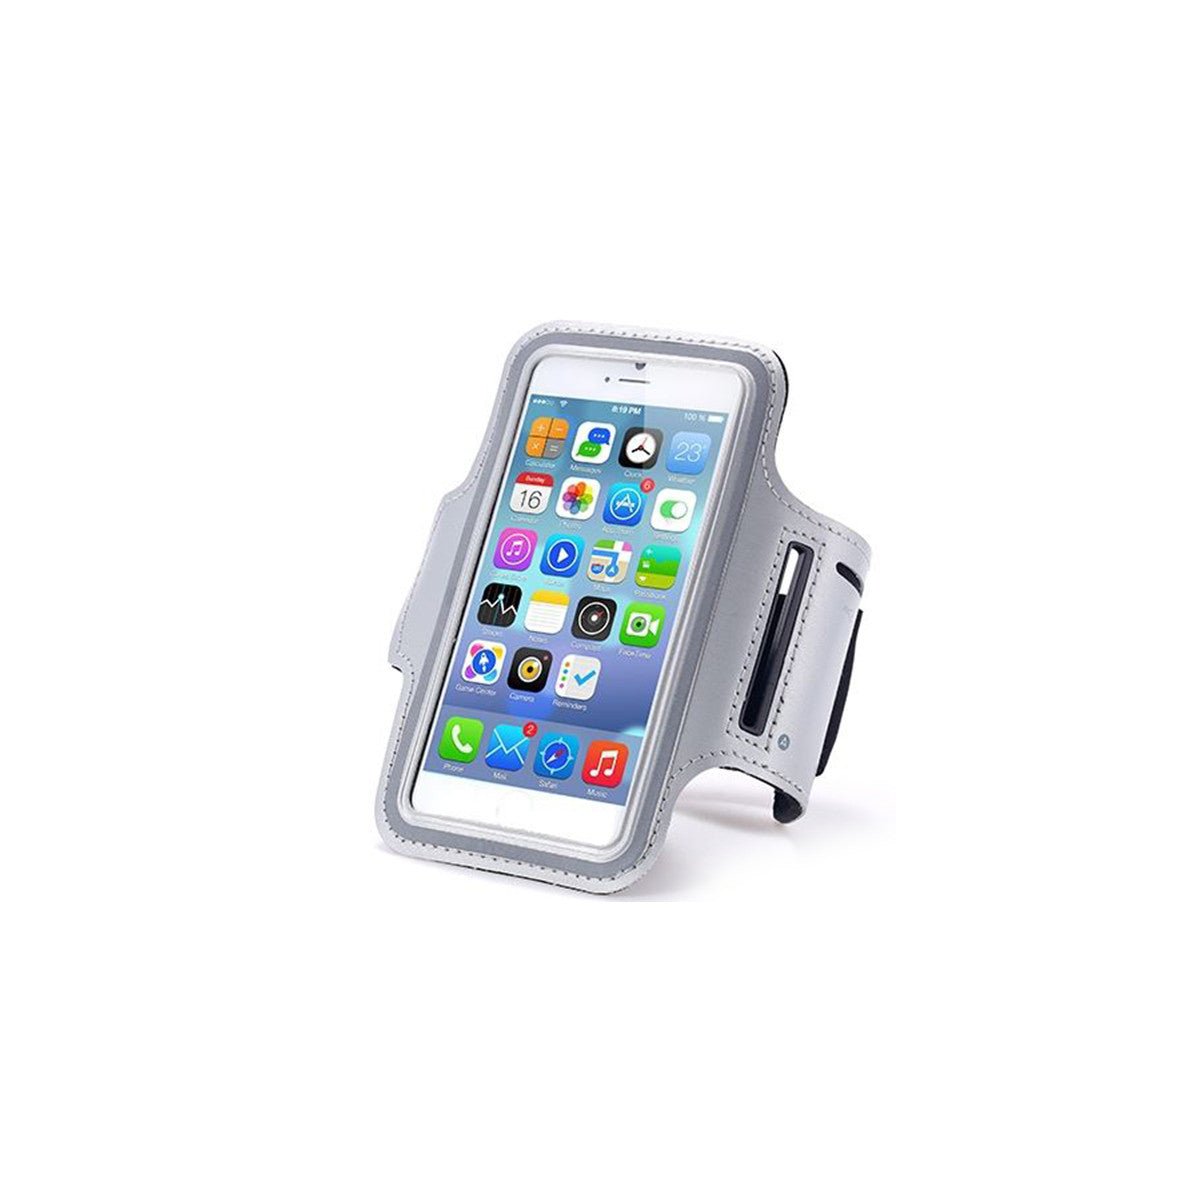 "Sport Gym Running Jogging Armband For Apple iPhone 6 Plus 5.5"" grey"